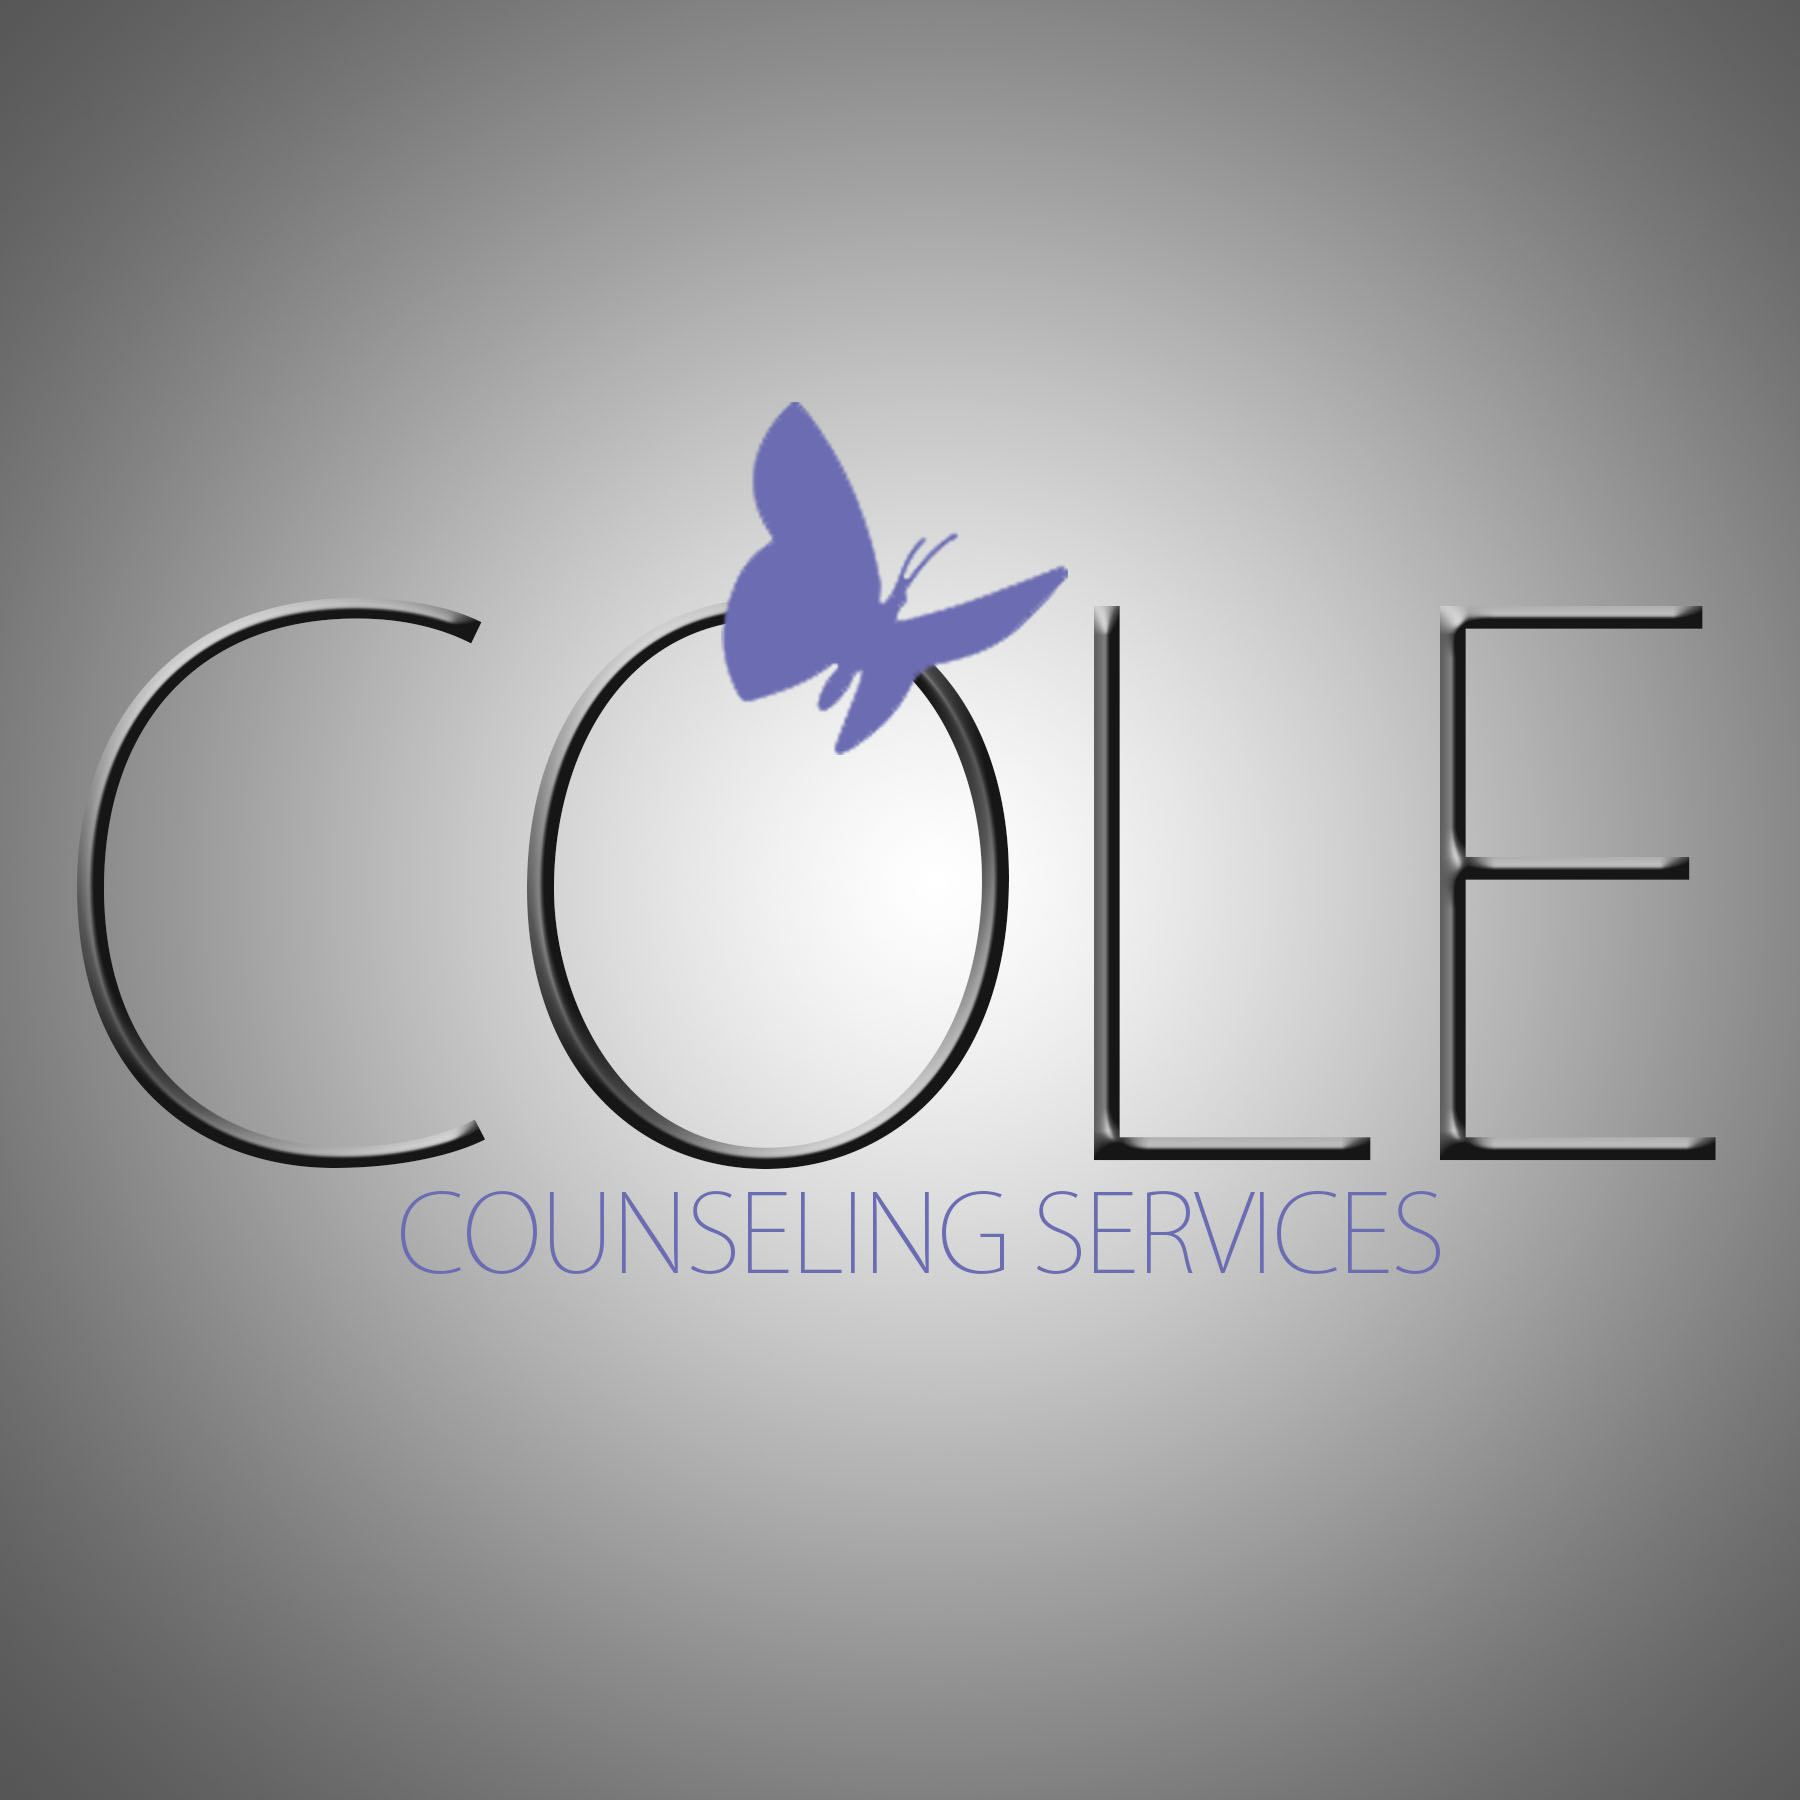 Coles Counseling blue.jpg